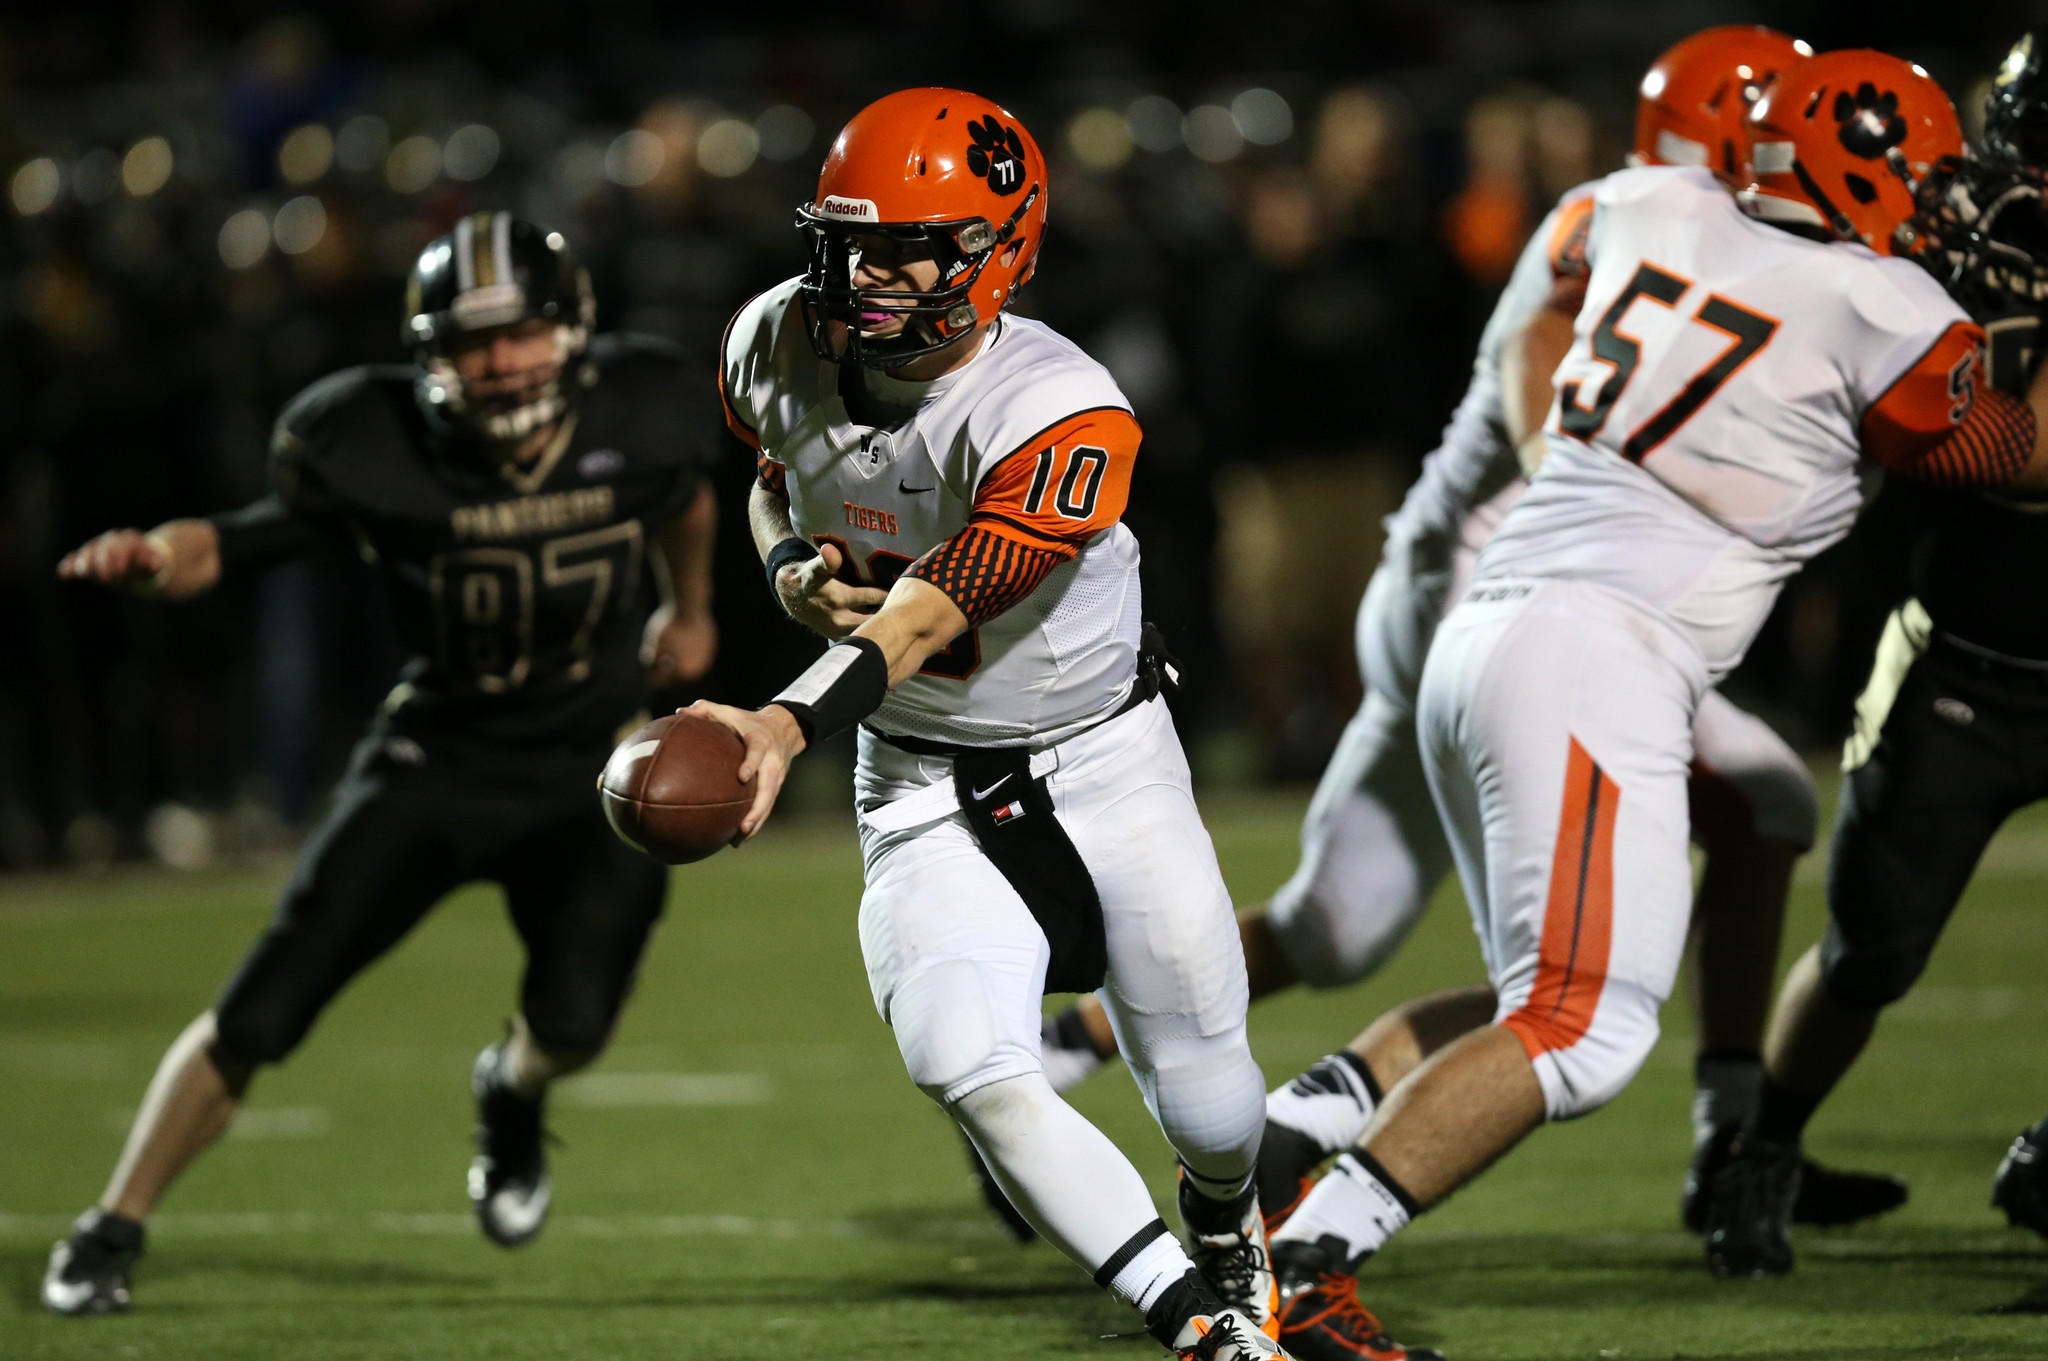 Wheaton Warrenville South quarterback Ryan Graham hands the ball off in the first half against Glenbard North.